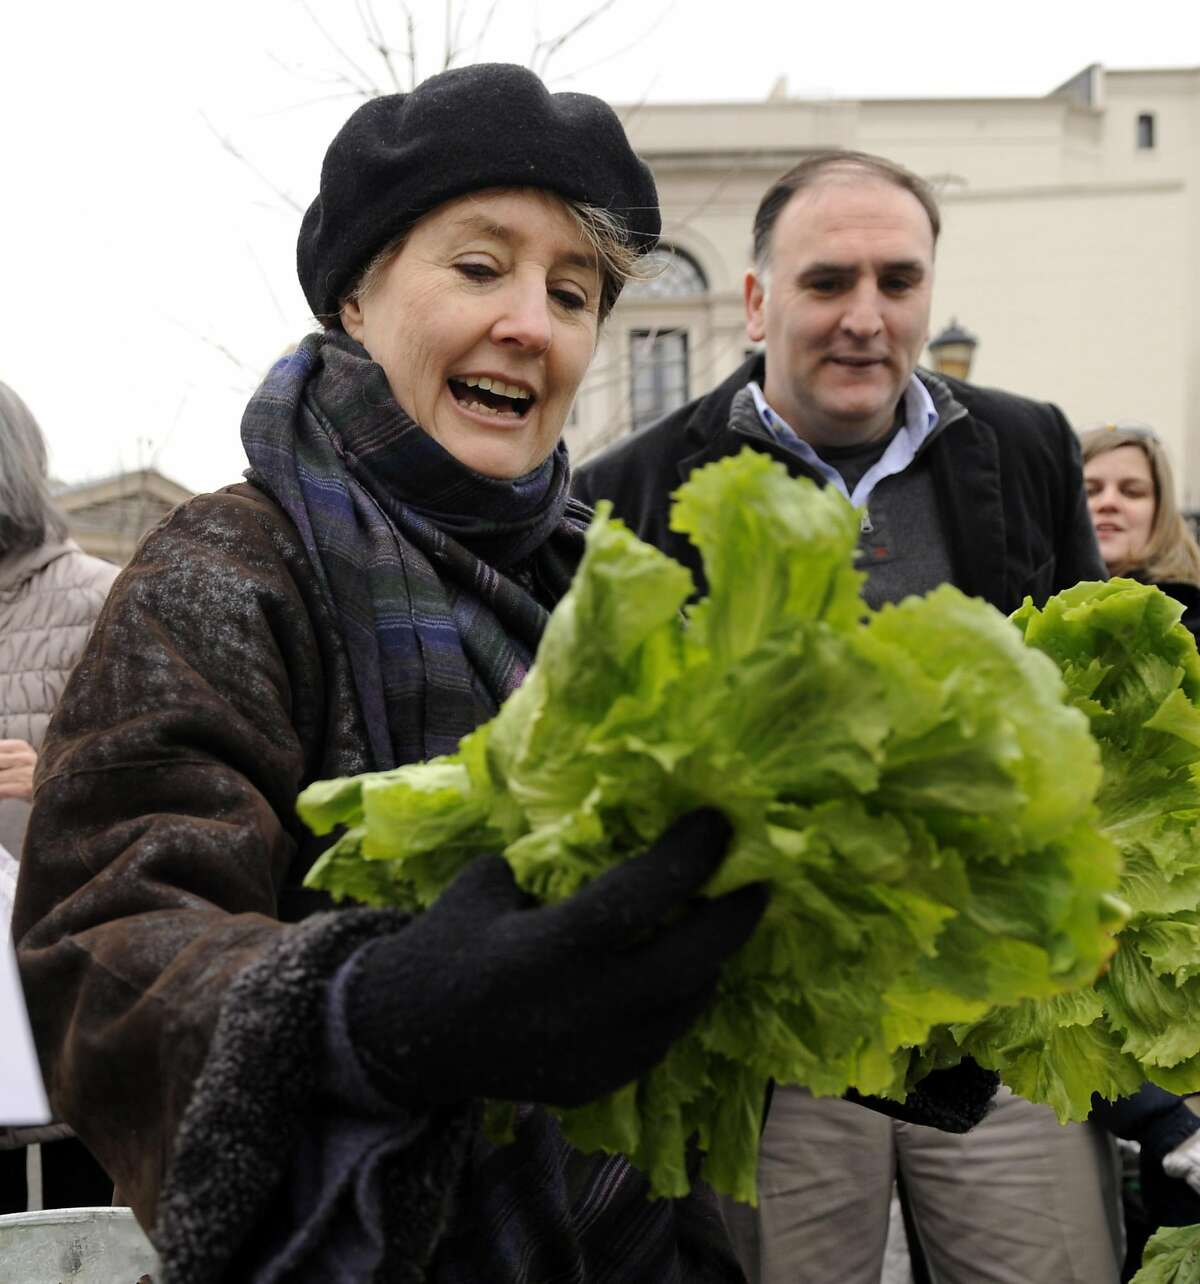 This Jan. 18, 2009 file photo shows Alice Waters looking over the produce at a farmer's market in Washington. After waiting nearly 20 years to see a vegetable garden planted at the White House, Waters is waiting again. But this time it's to see how many Americans will follow the lead of first lady Michelle Obama, who last week made Waters' wish a reality when she dug a shovel into the South Lawn of 1600 Pennsylvania Ave. to make way for a garden. (AP Photo/Susan Walsh,File)